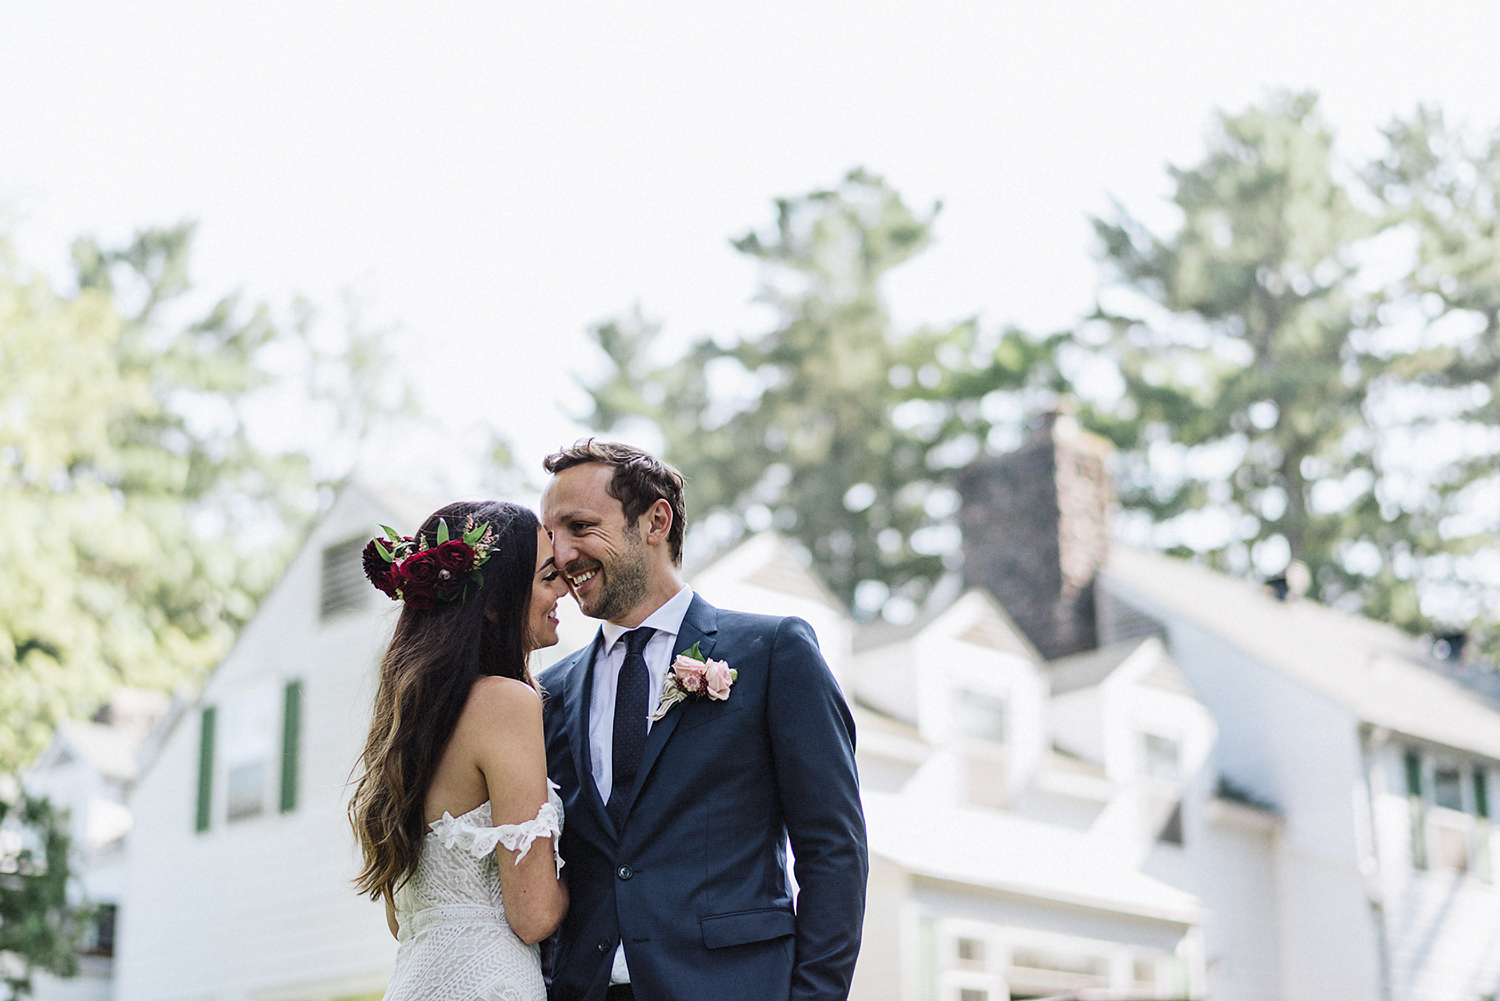 Muskoka-Cottage-Wedding-Photography-Photographer_Photojournalistic-Documentary-Wedding-Photography_Vintage-Bride-Lovers-Land-Dress_Rue-Des-Seins_Forest-Reception-Candid-Moment-Couple.jpg